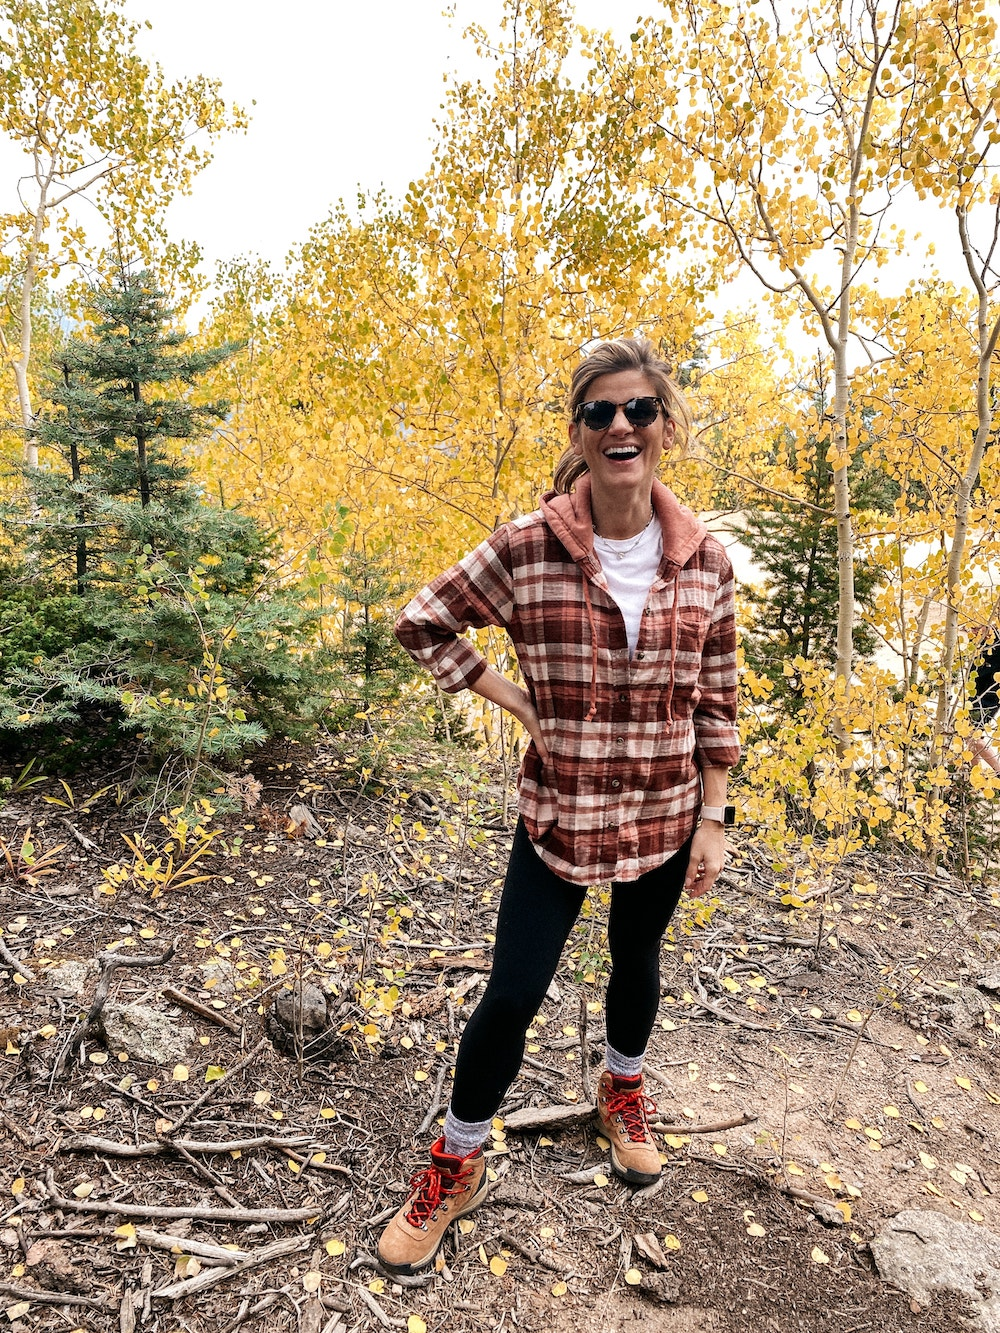 brighton butler mountain hiking outfit, plaid shirt wrapped around waist with leggings and hiking boots